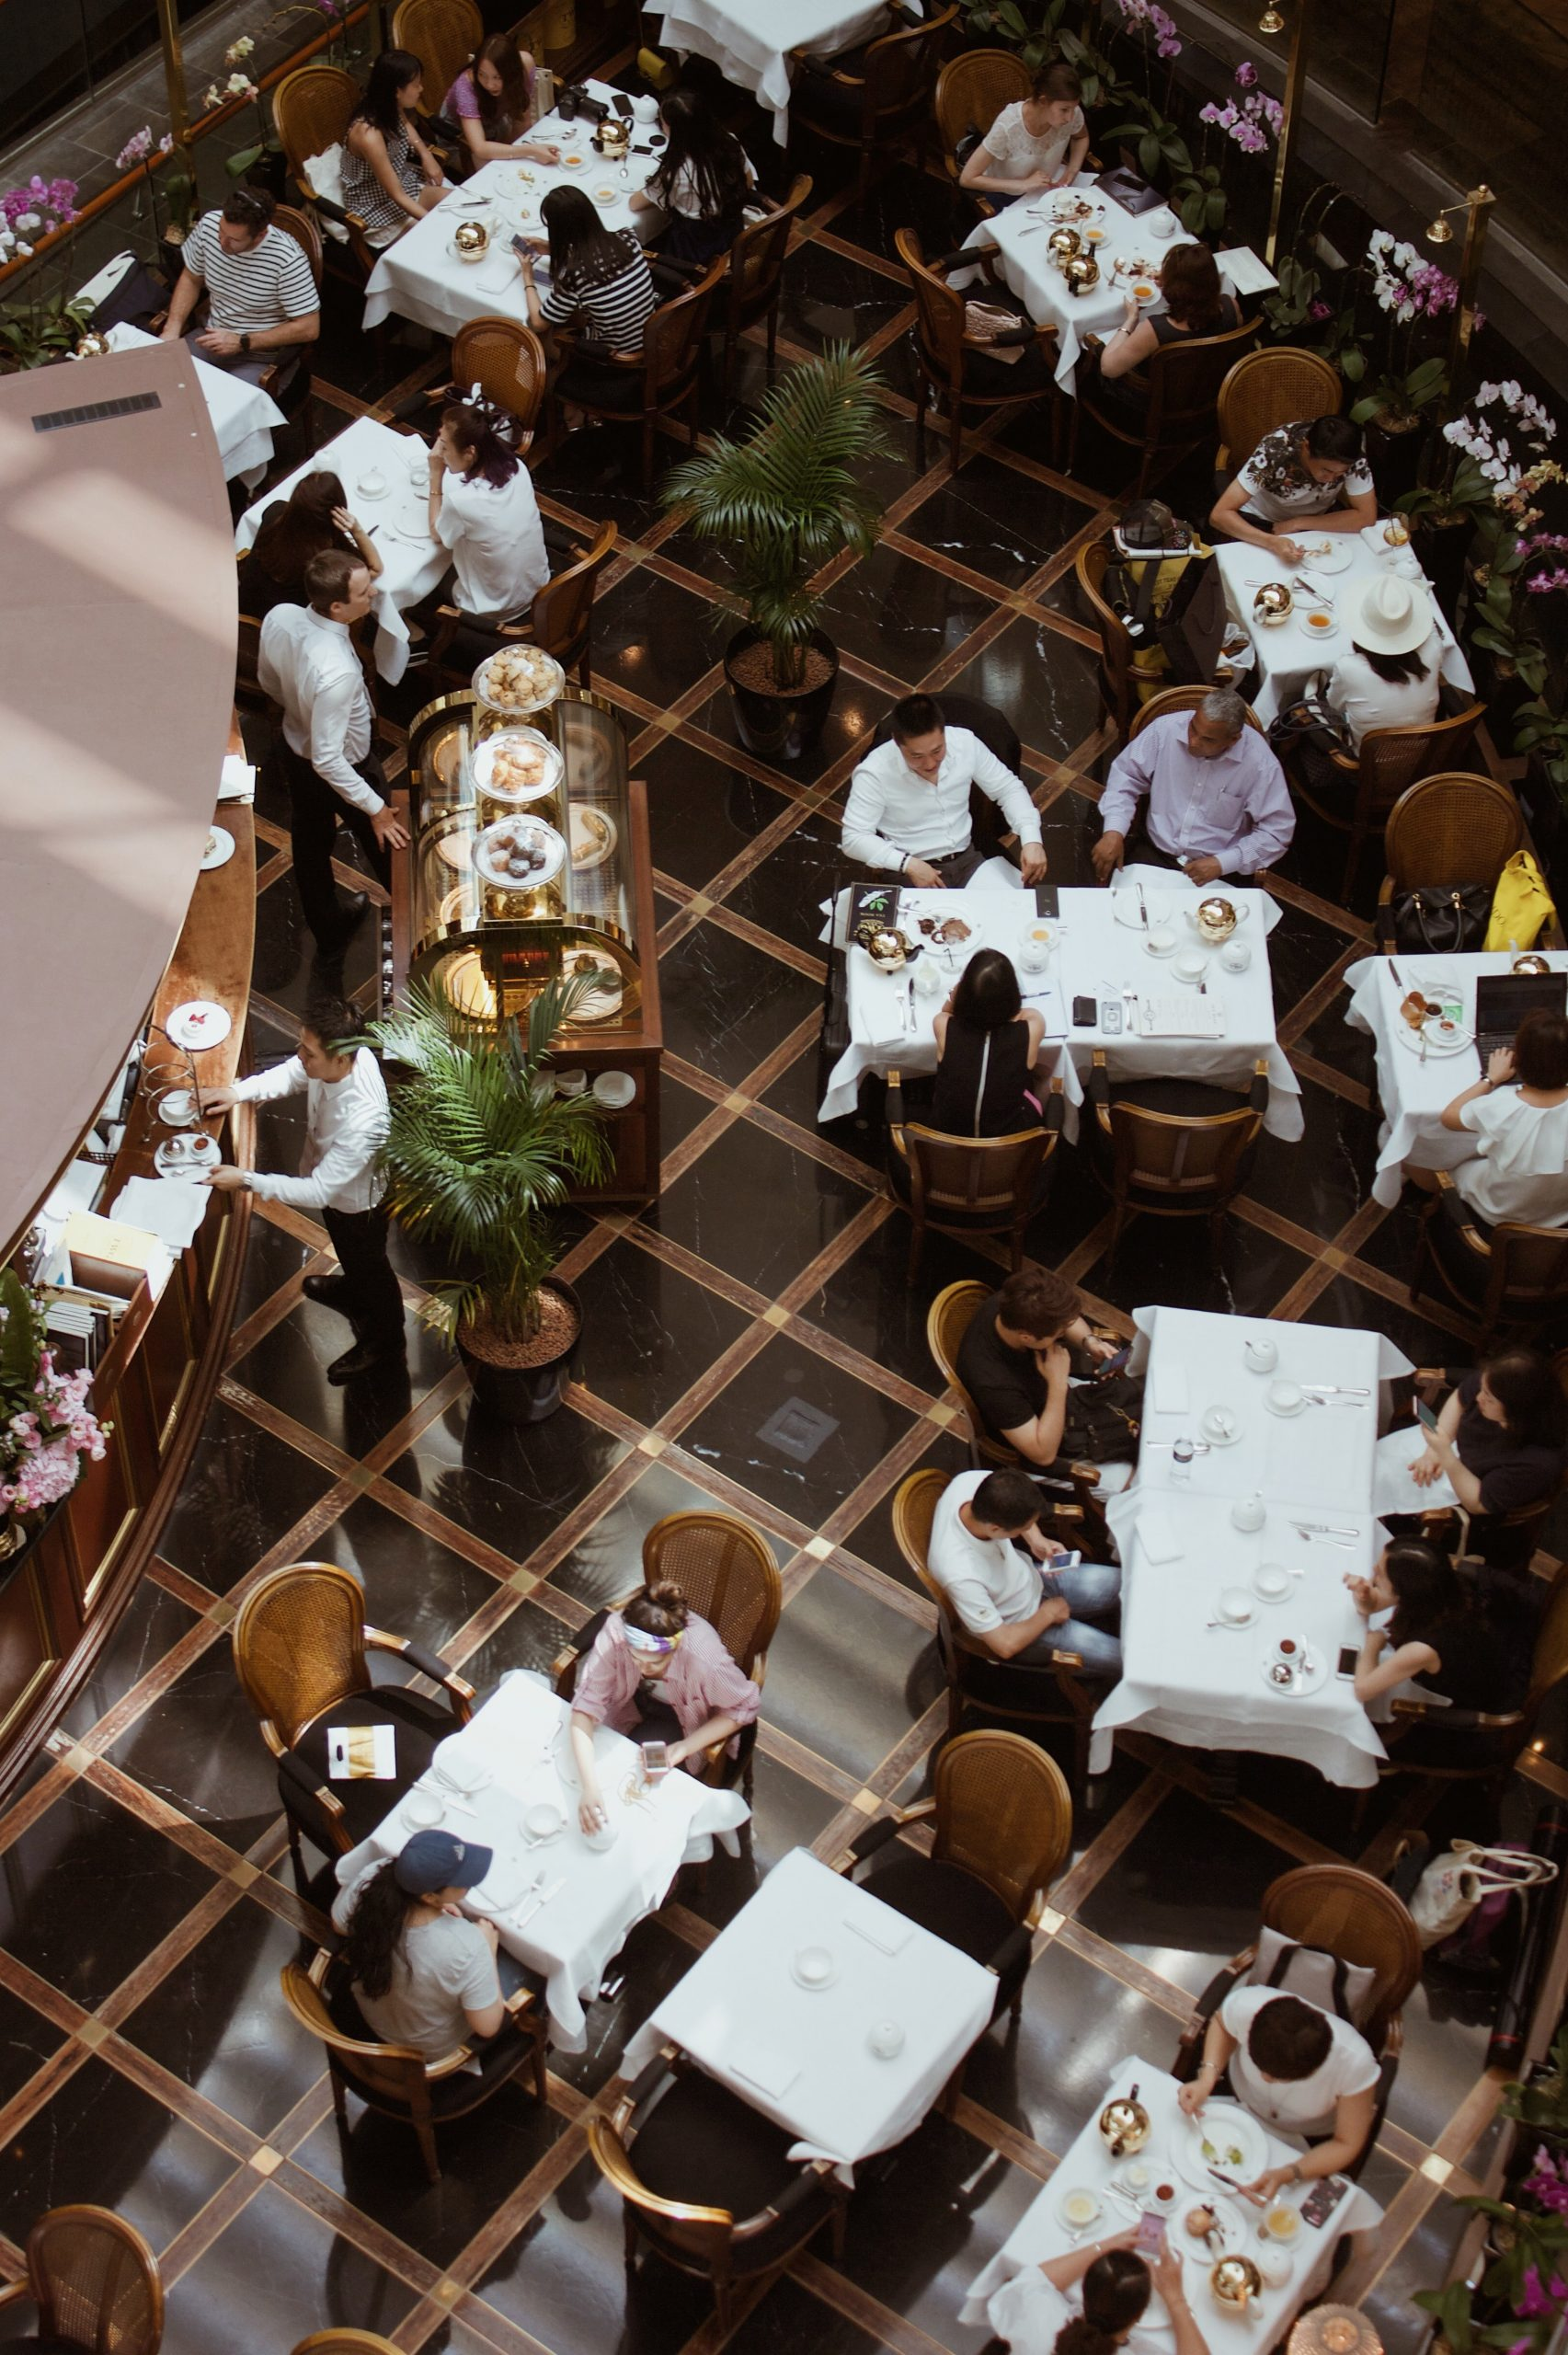 k8 sWEpcc0Rm0U unsplash 1 scaled - How to Successfully Manage Your Restaurant